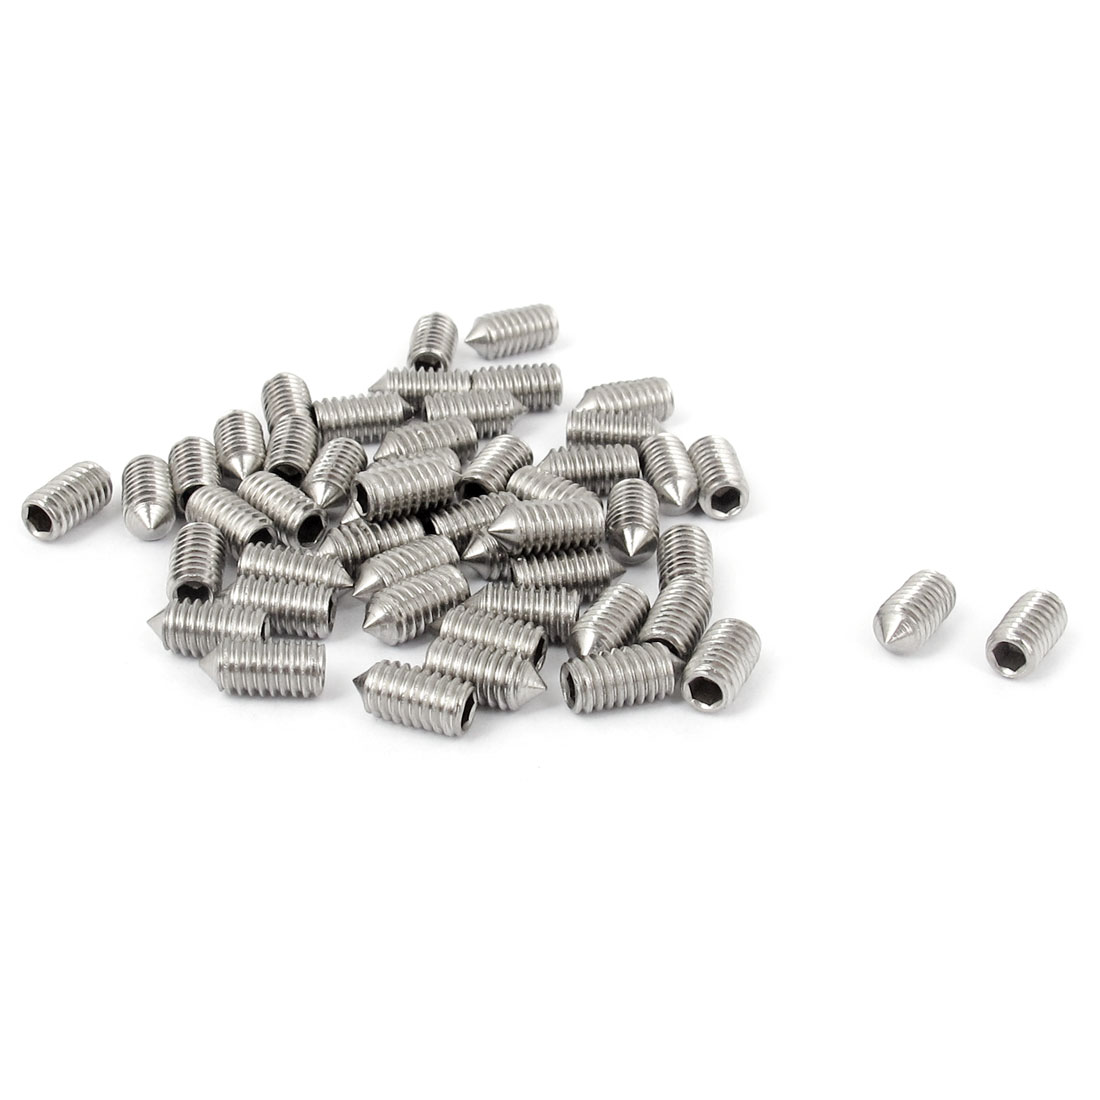 M4x8mm 304 Stainless Steel Cone Point Hexagon Socket Grub Screws 50pcs